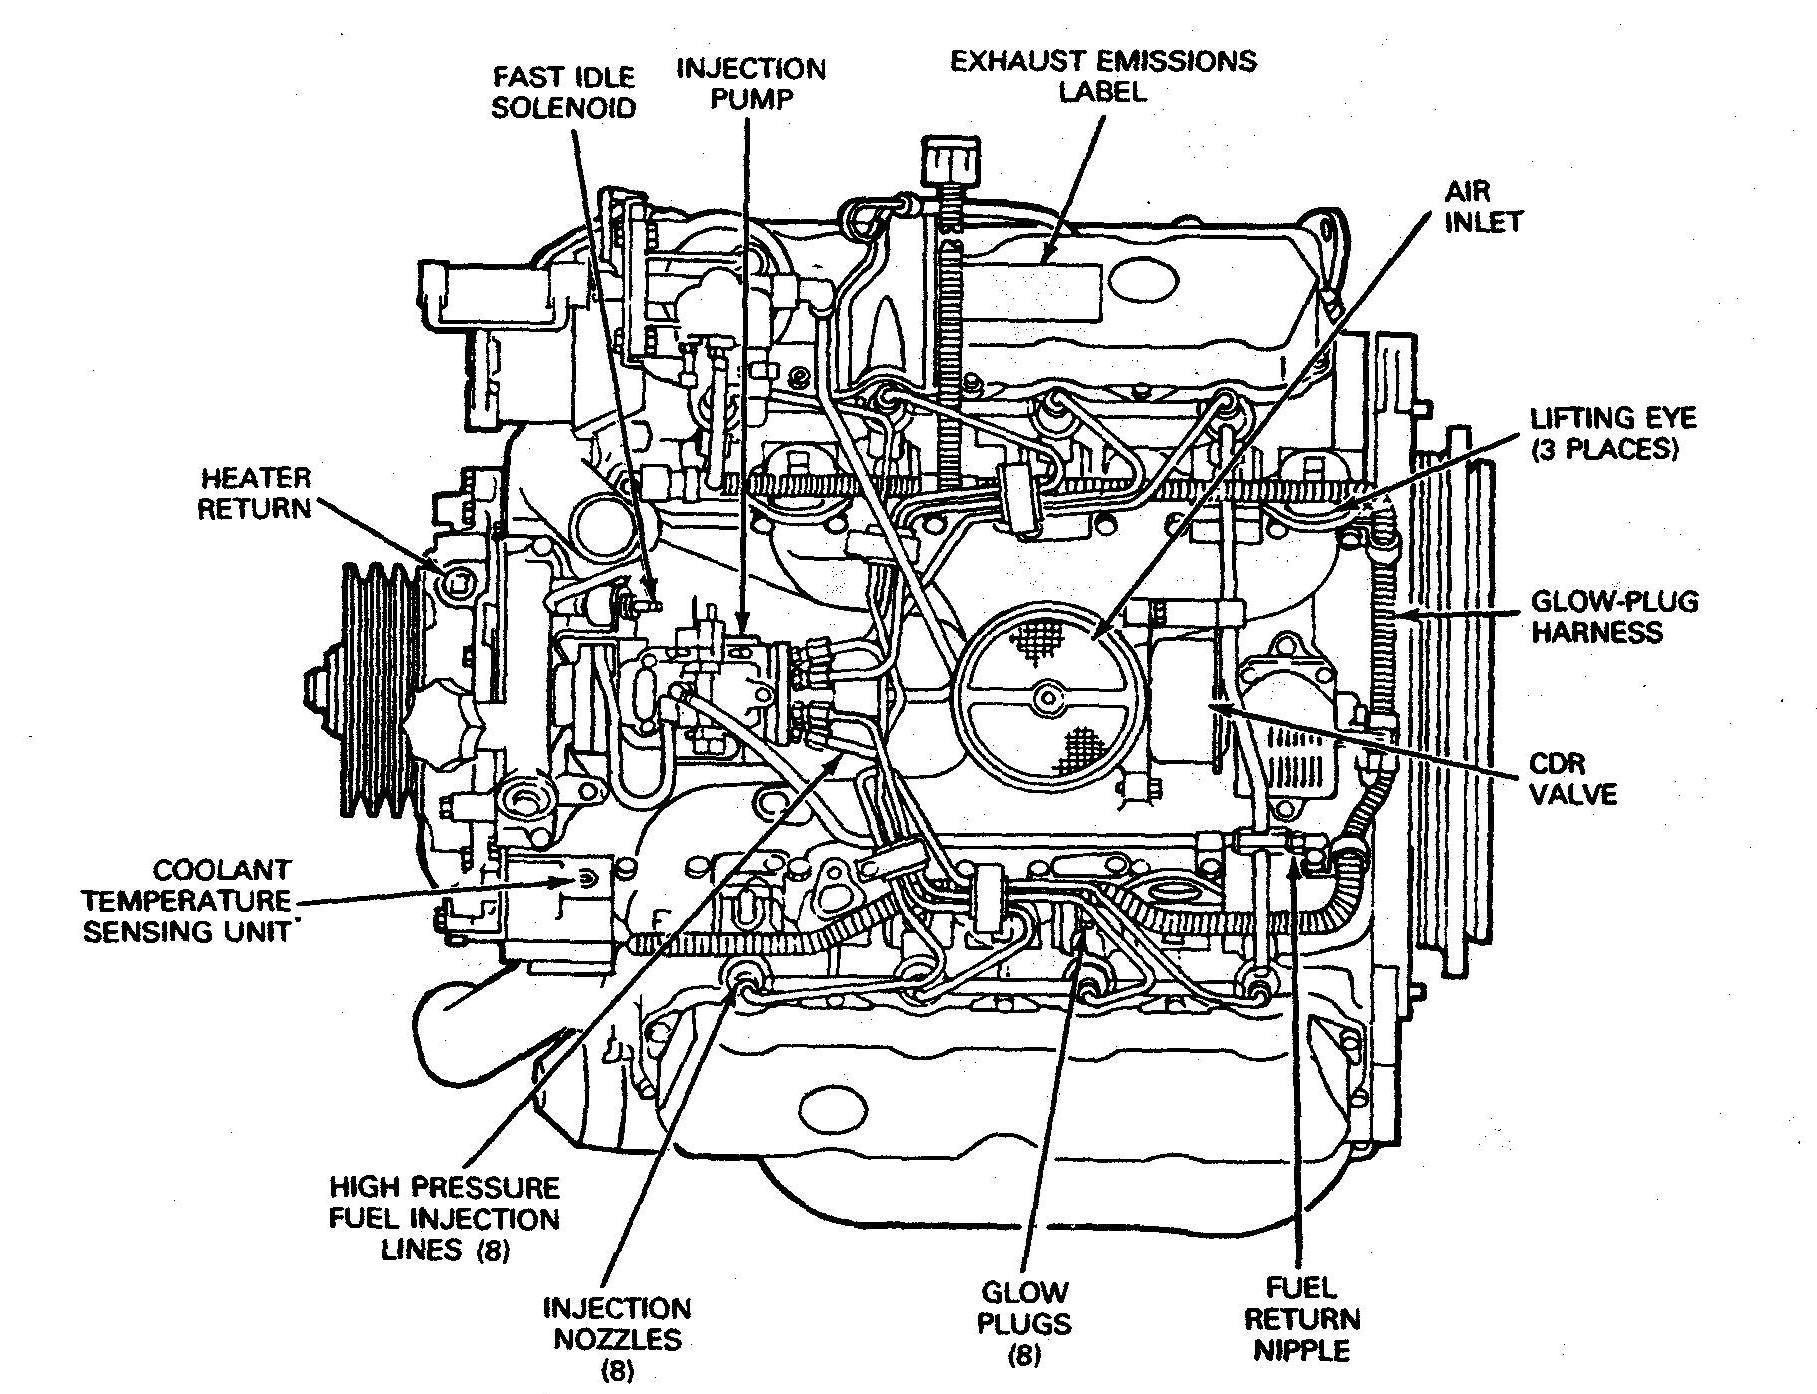 hight resolution of ford 7 3 engine parts diagram my car parts engineering diesel cars ford 7